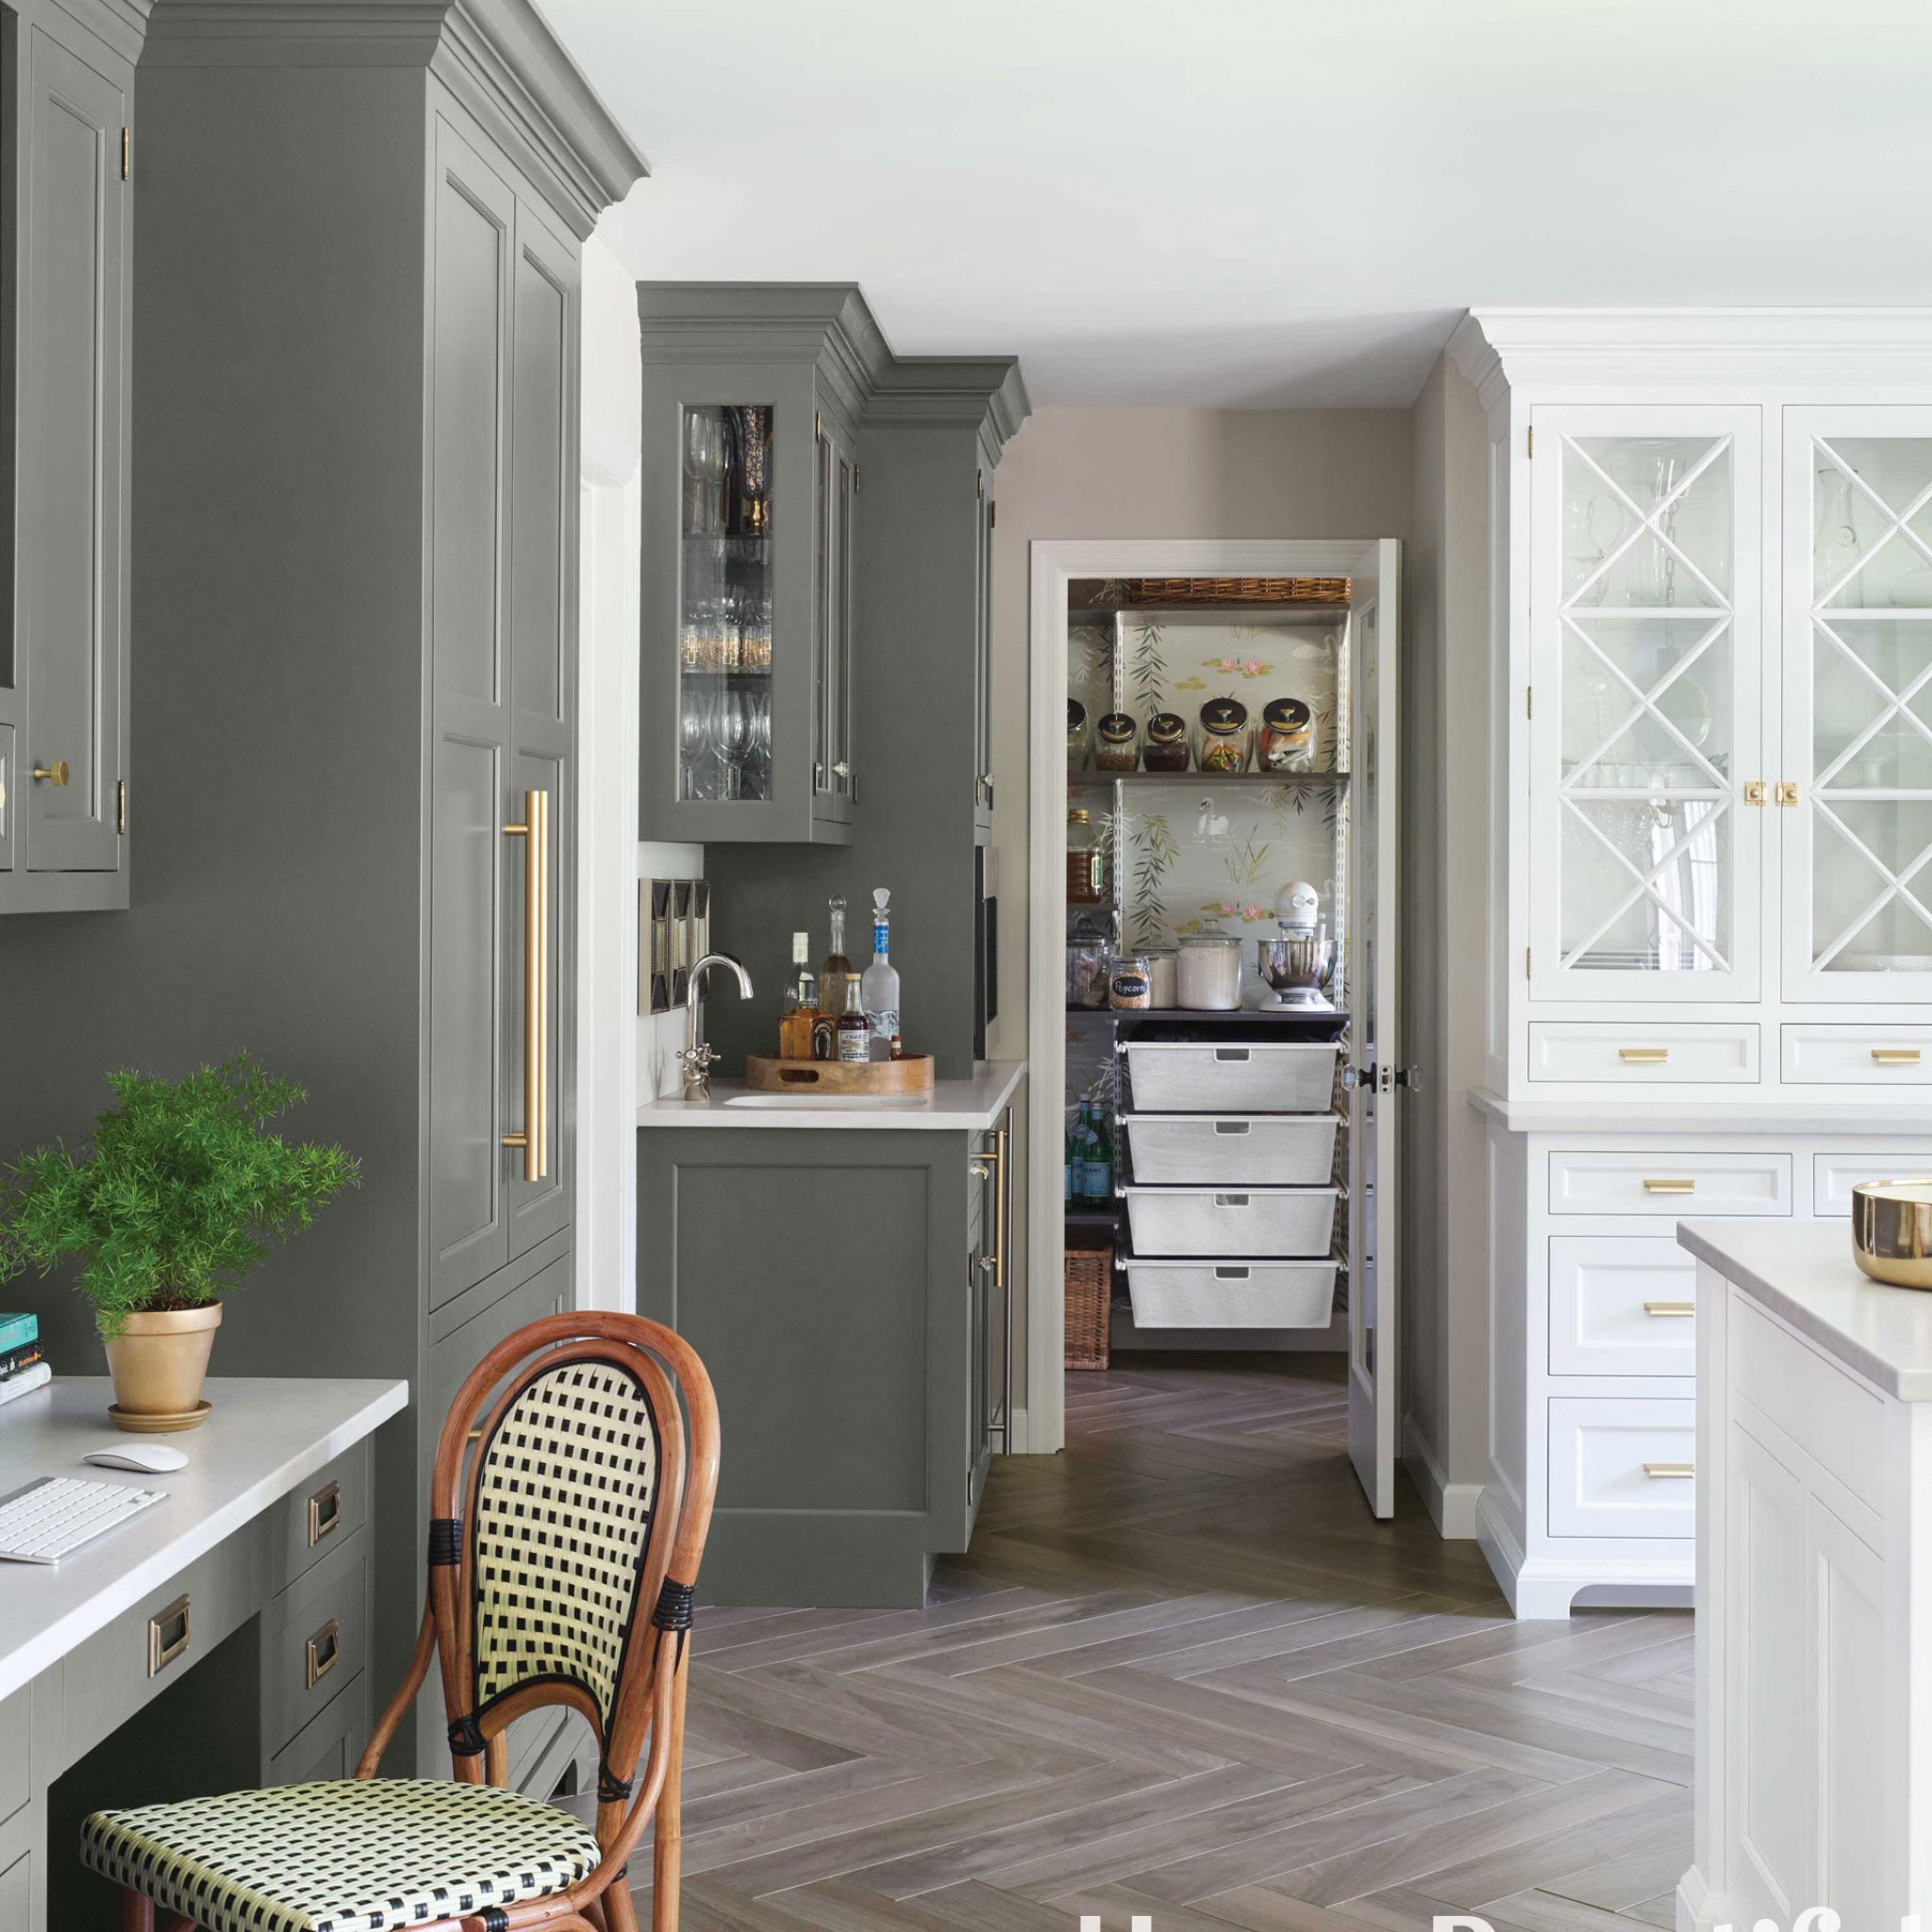 Best ideas about Kitchen Paint Color Ideas . Save or Pin 19 Kitchen Cabinet Colors 2017 Interior Decorating Now.